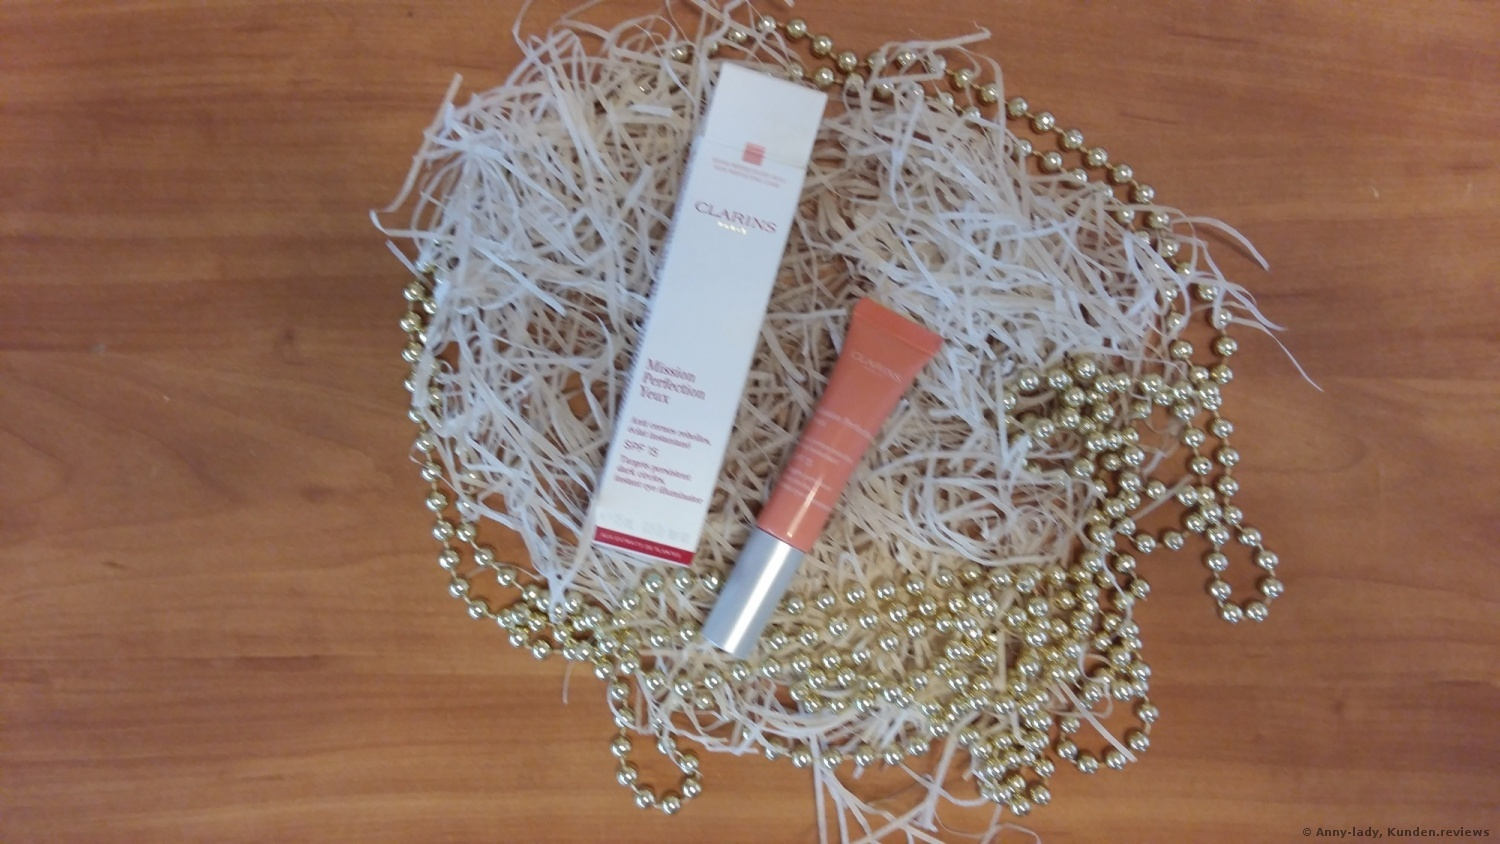 Clarins  Mission Perfection Yeux SPF 15 Augencreme Foto